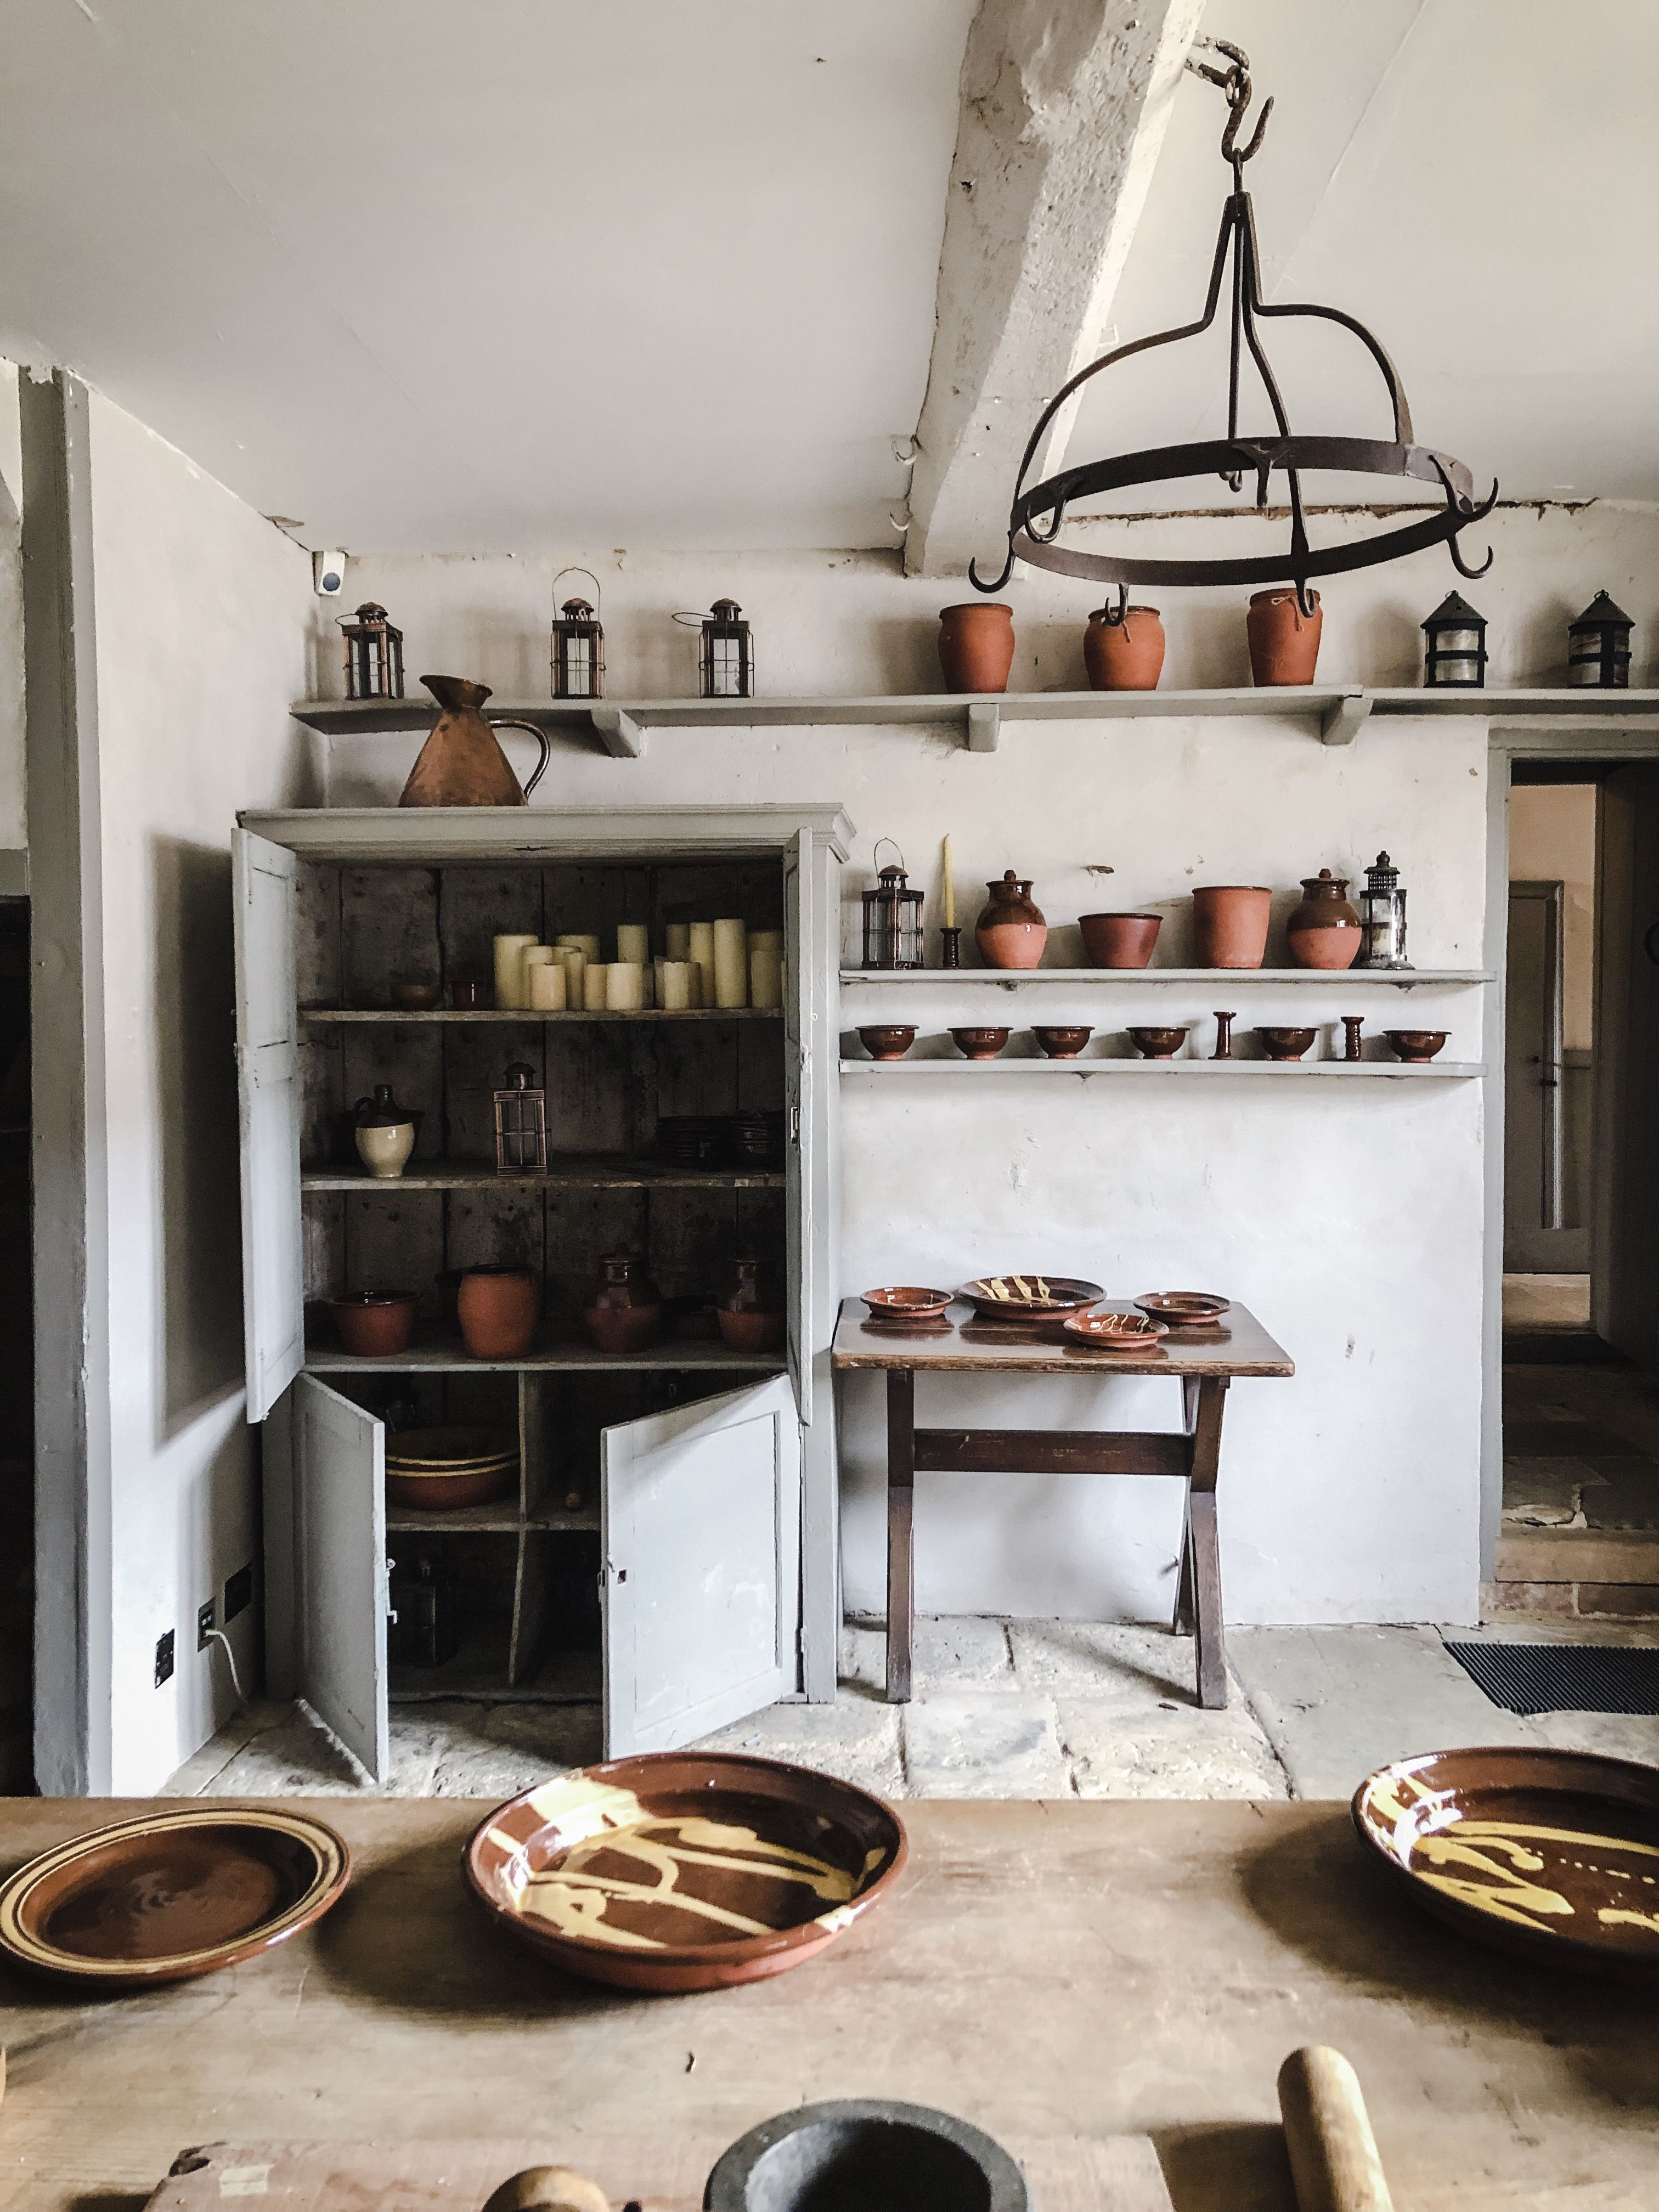 Pin by unc hs on home ♡ Old fashioned kitchen